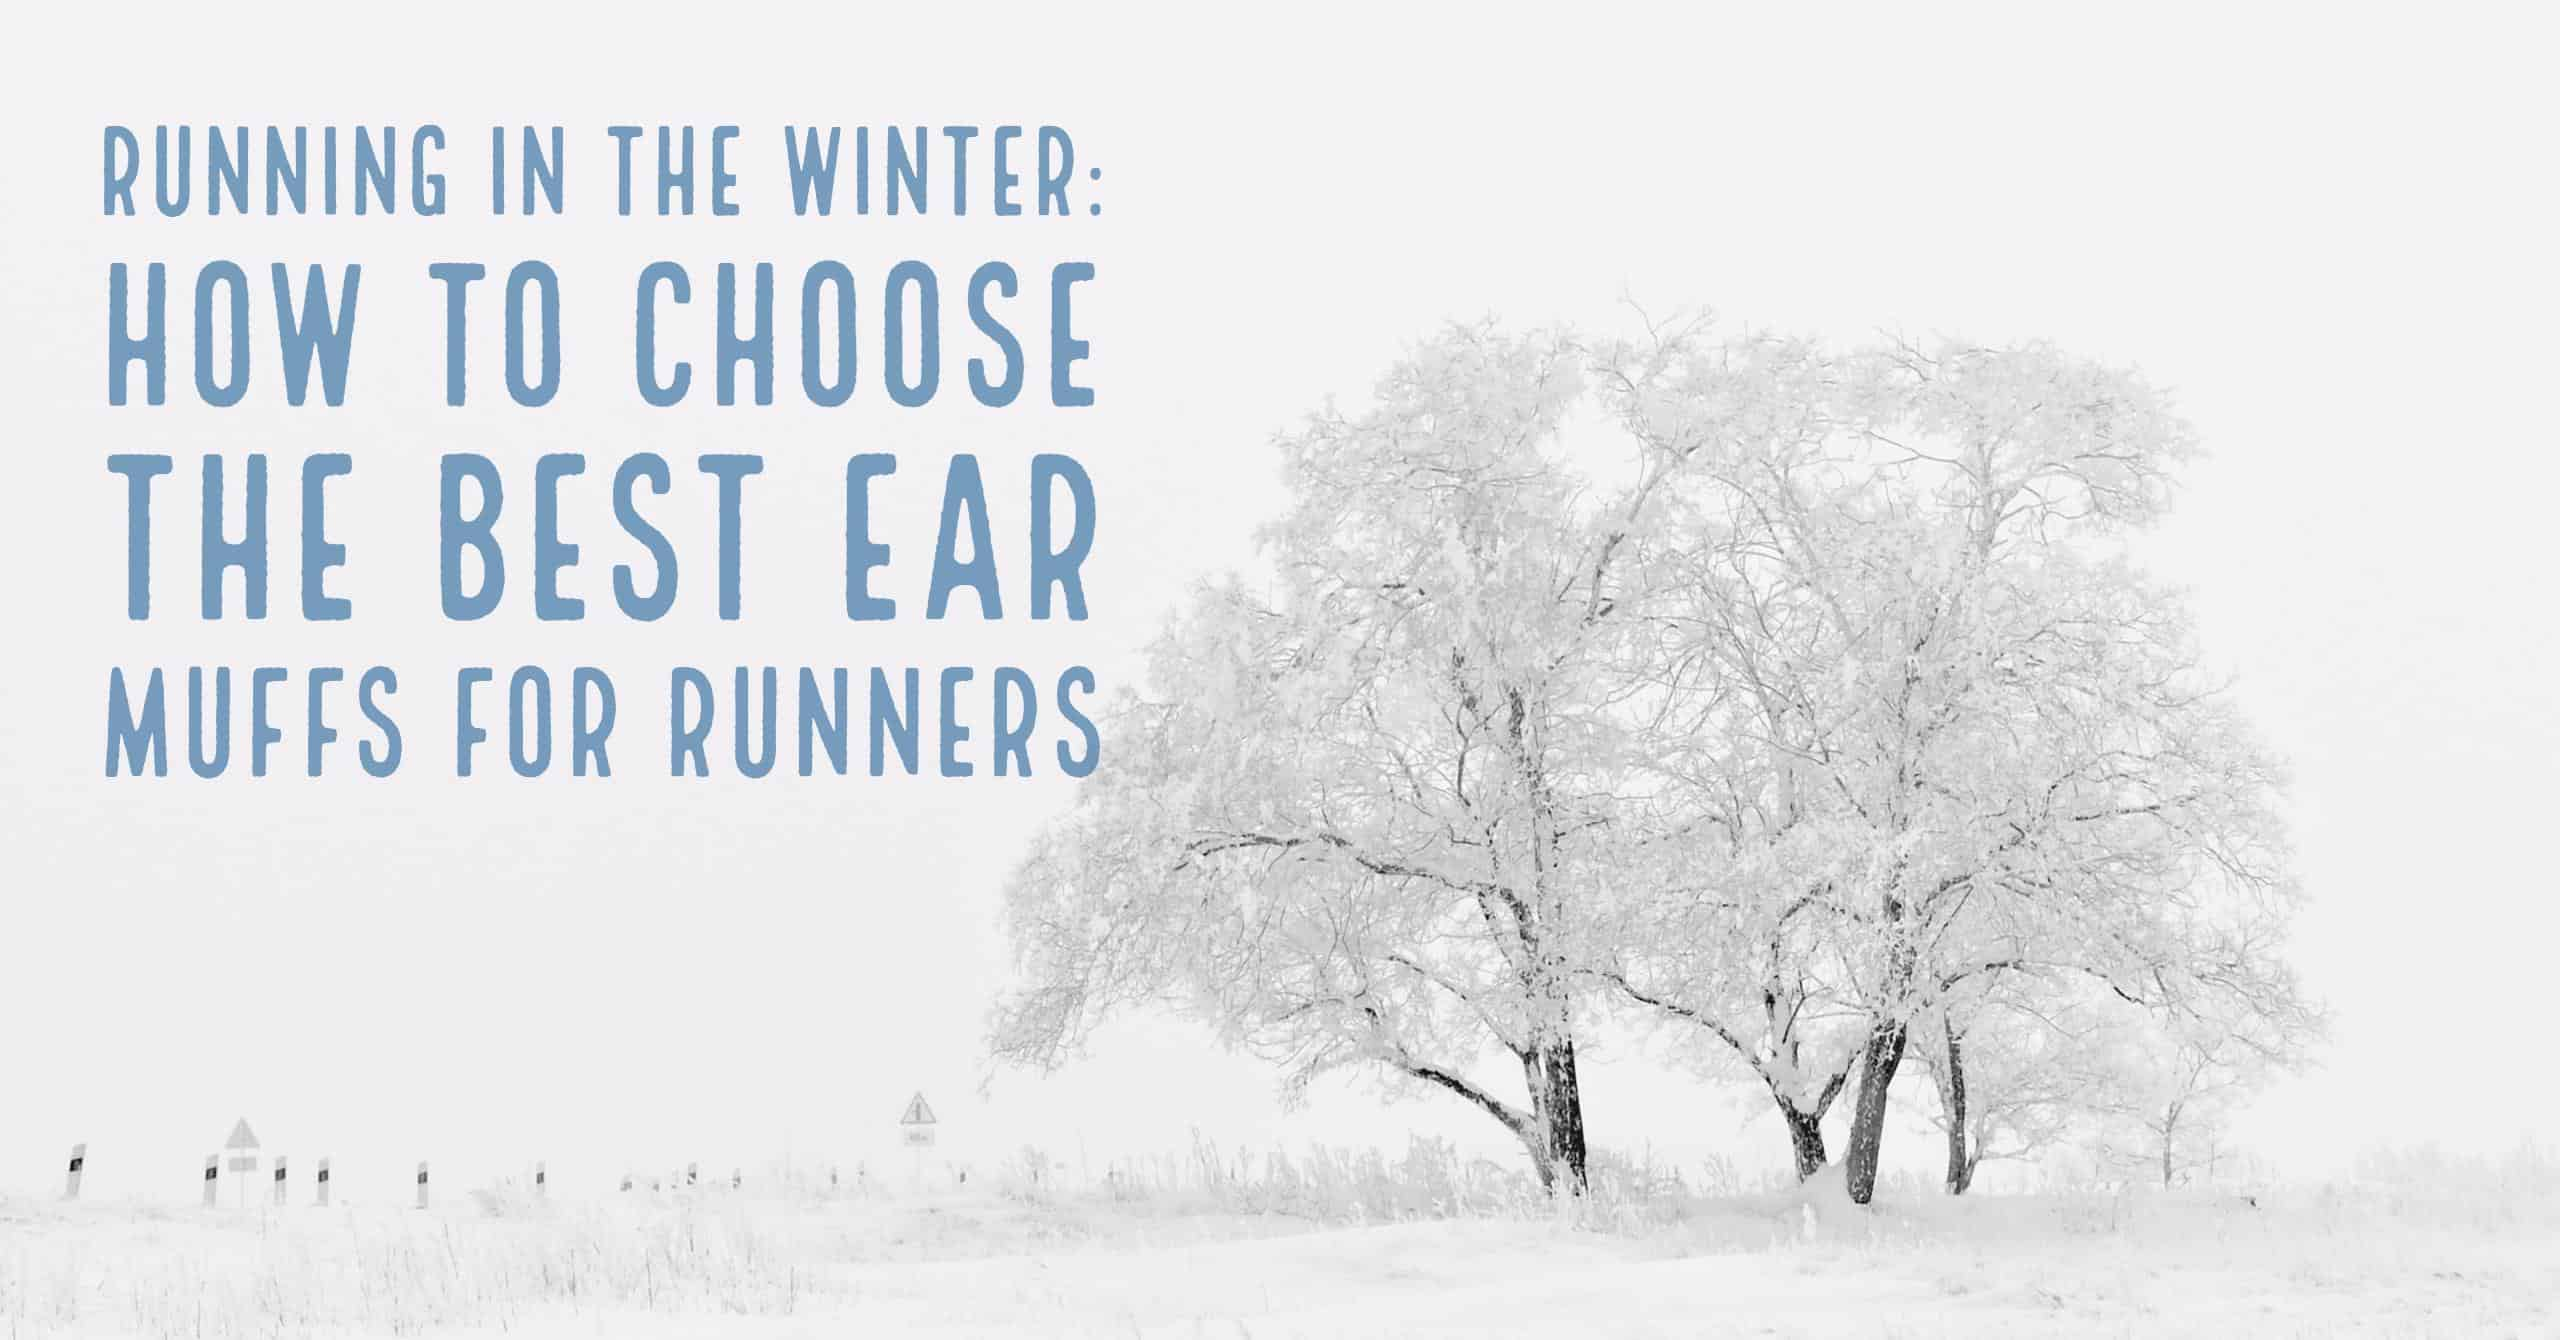 Your morning runs can be brutal for your ears especially in the winter. We break down how to choose the best ear Muffs for runners. And include our top picks